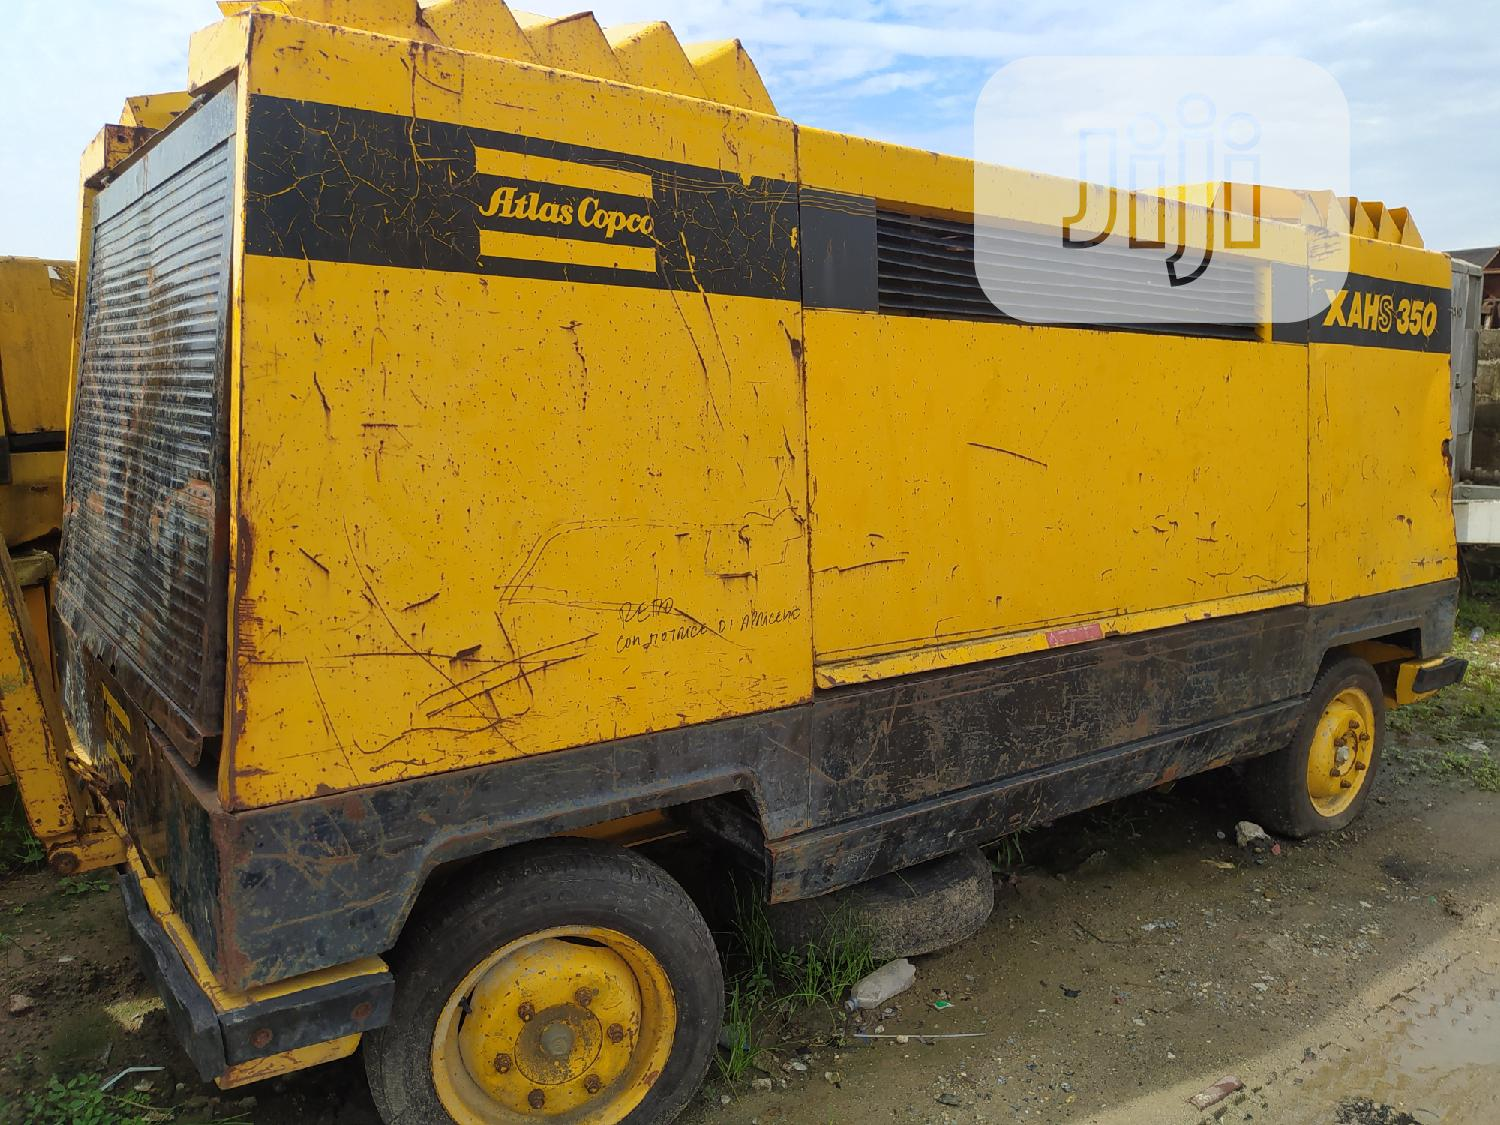 Newly Arrived 10 Cylinder Atlas Copco XAHS350 Air Compressor